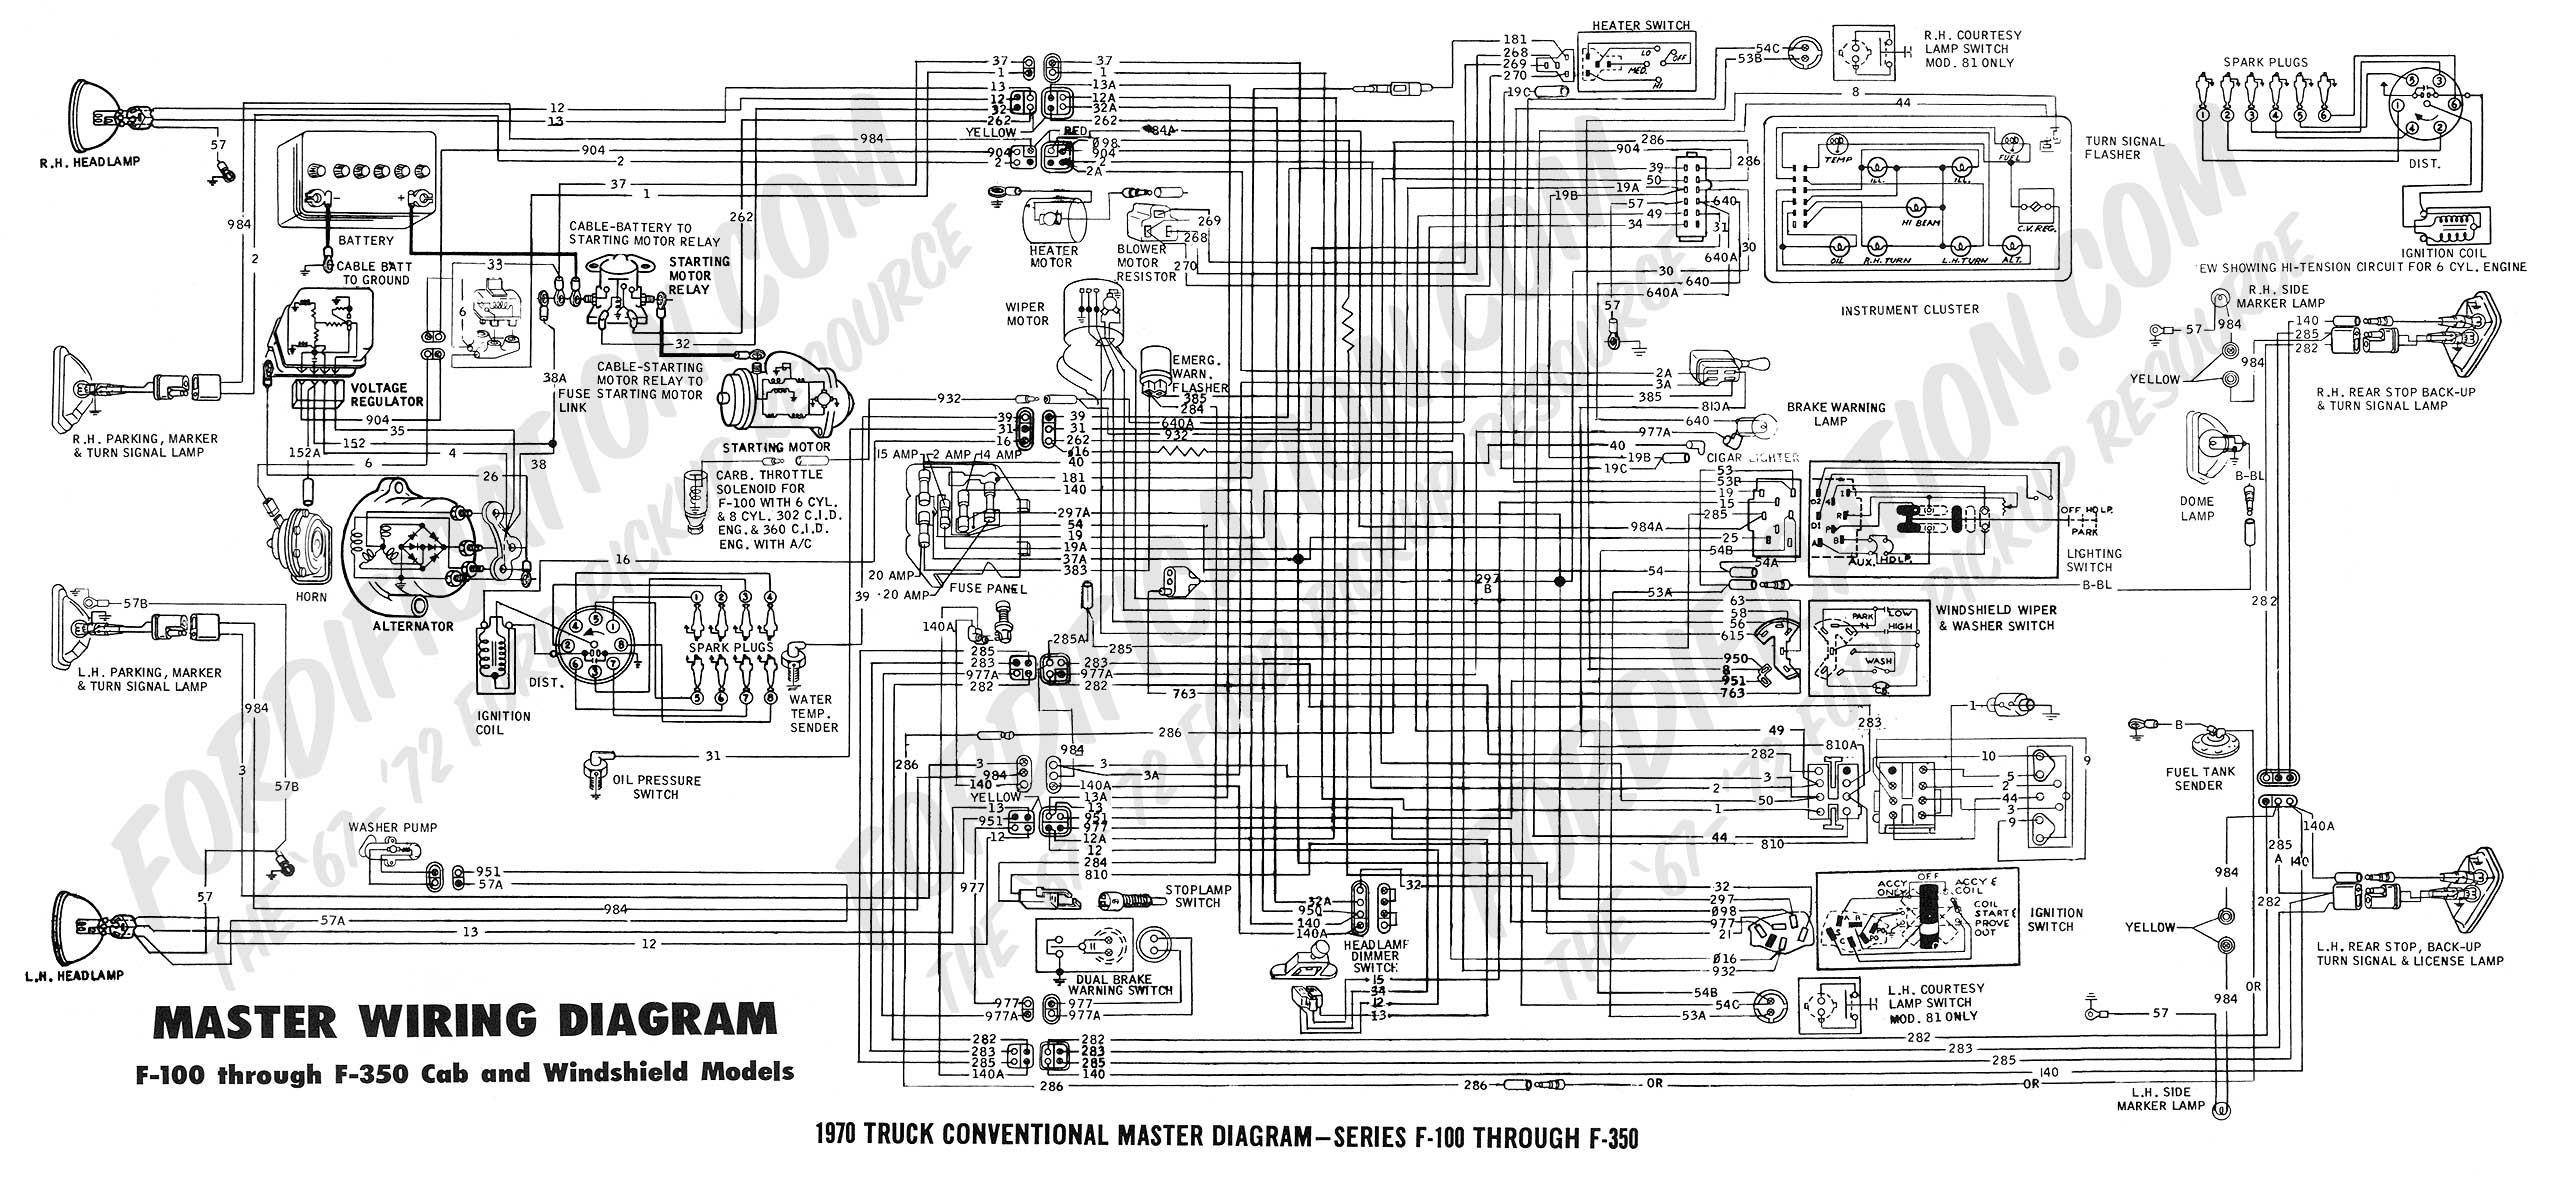 03 ford f350 fuse diagram 2013 ford f350 wiring diagram 2013 wiring diagrams online